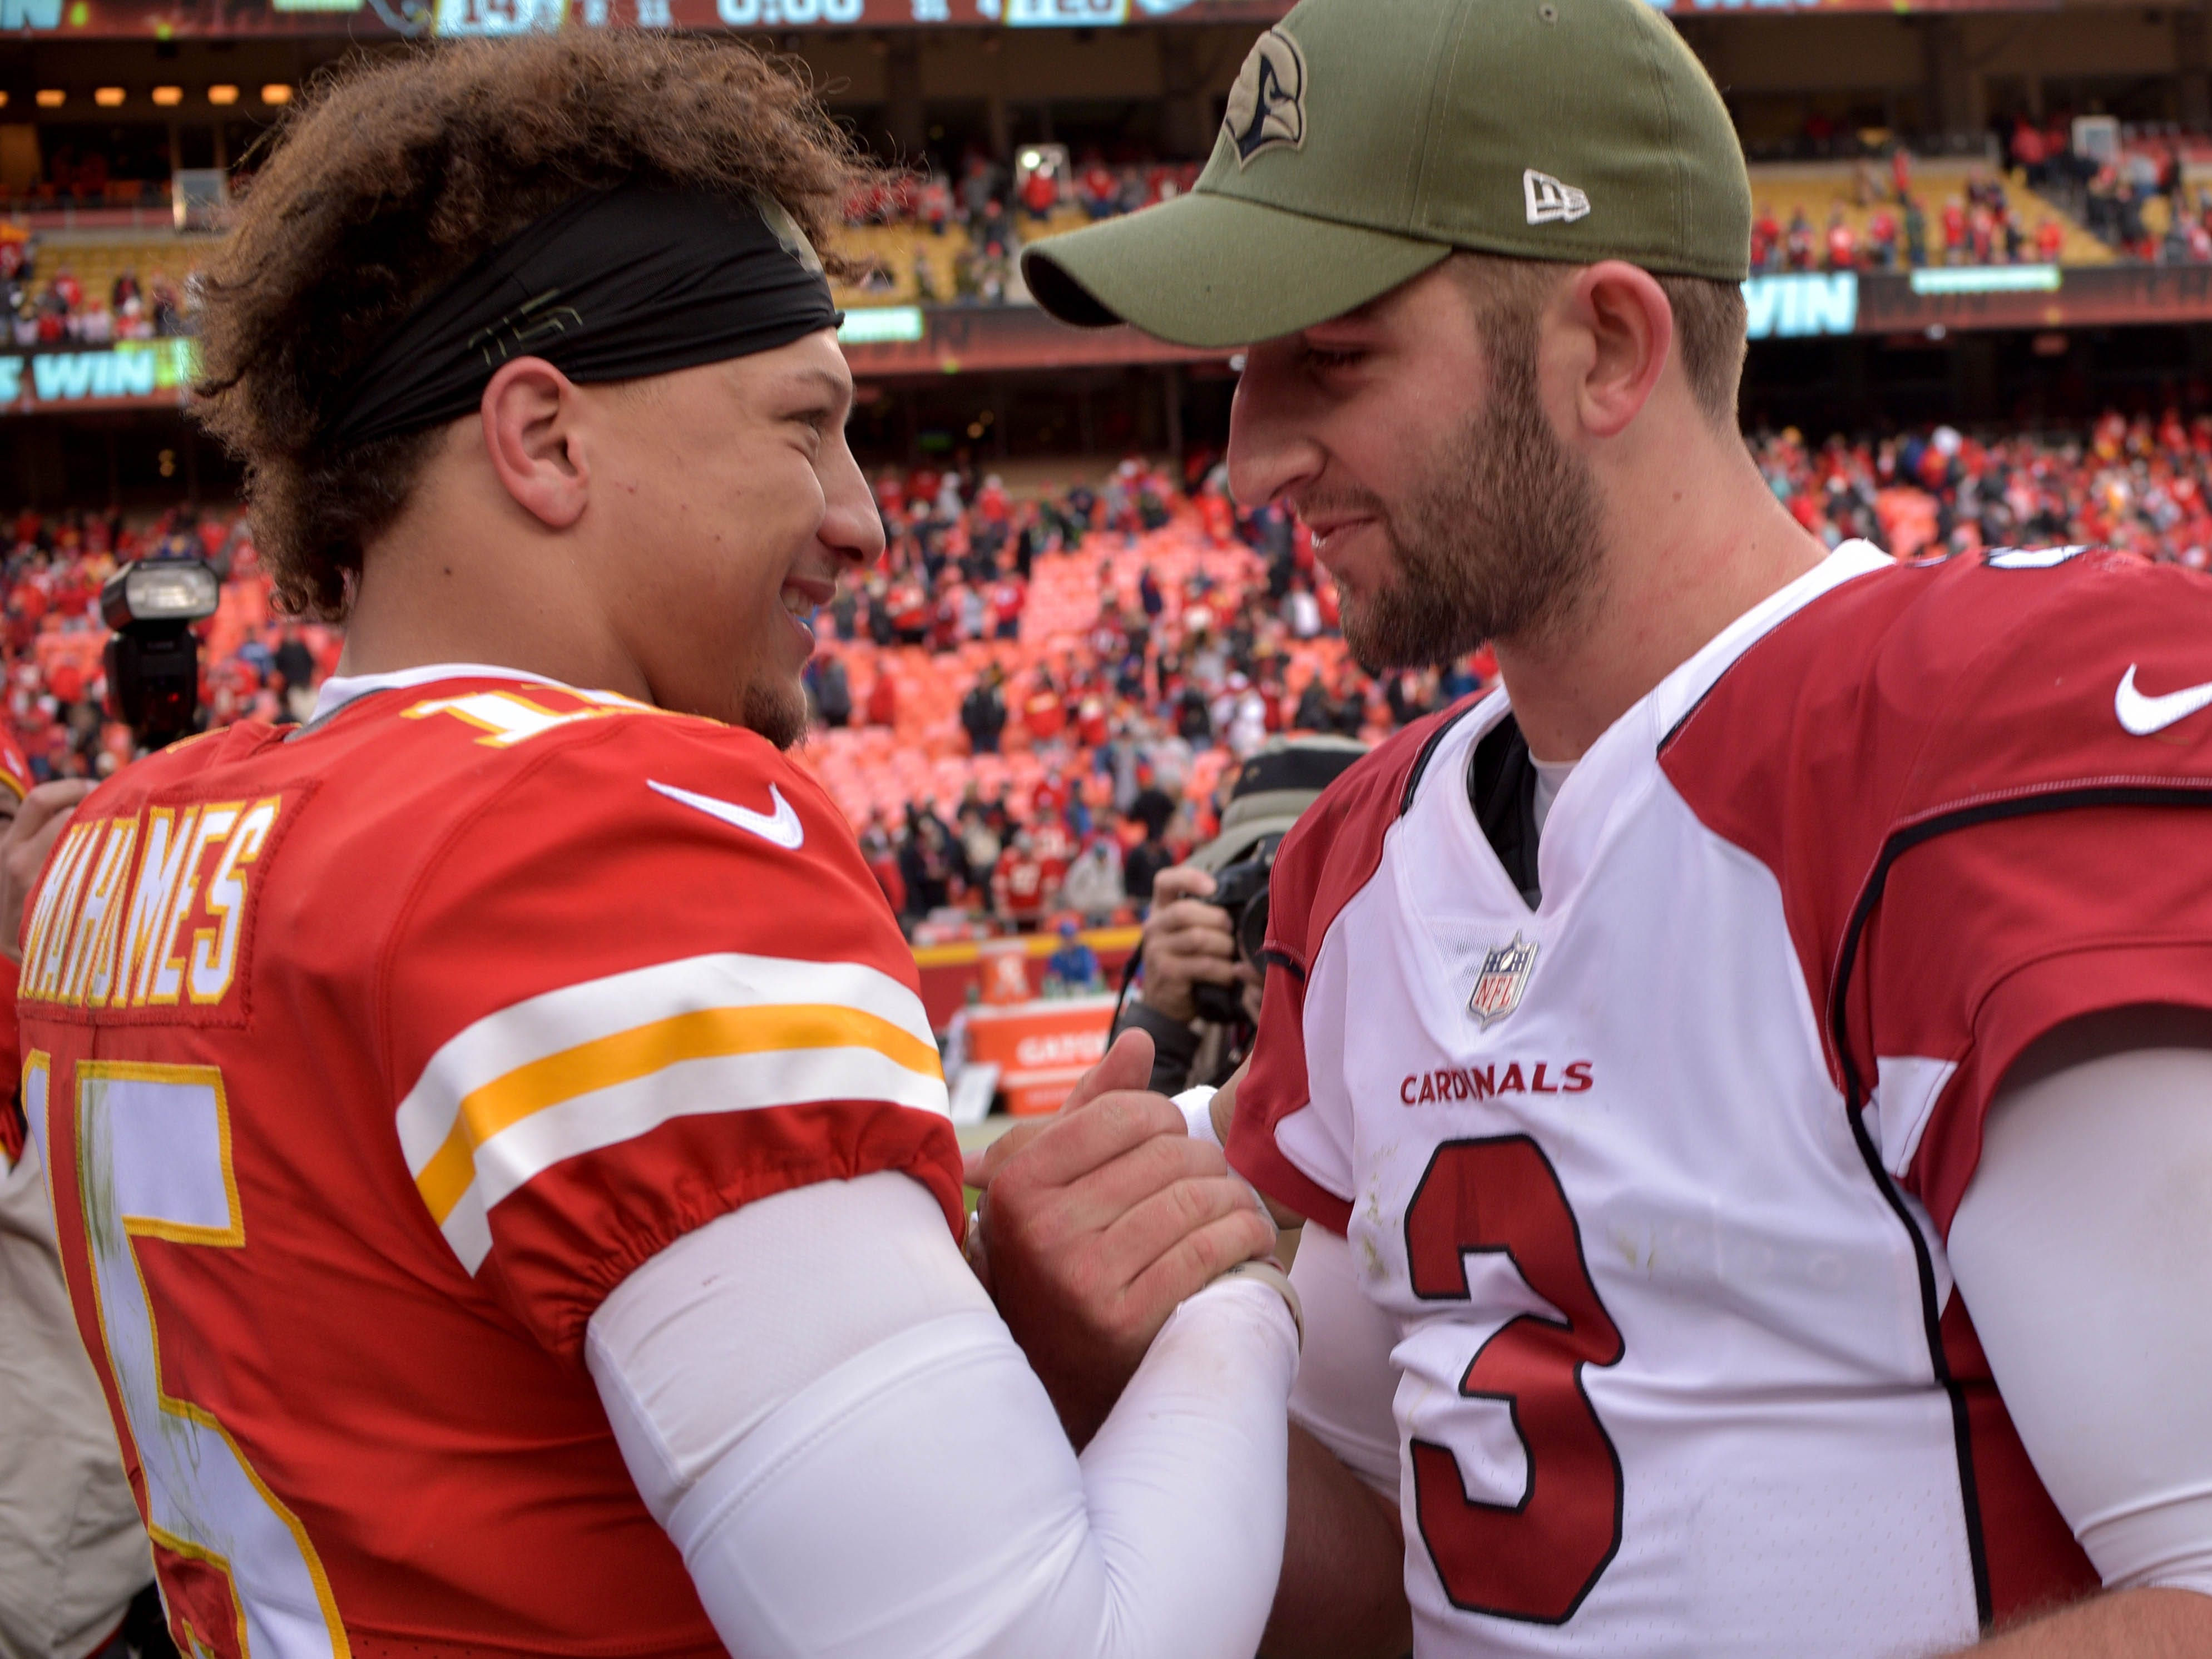 Nov 11, 2018; Kansas City, MO, USA; Kansas City Chiefs quarterback Patrick Mahomes (15) shakes hands with Arizona Cardinals quarterback Josh Rosen (3) after the game at Arrowhead Stadium. The Chiefs won 26-14. Mandatory Credit: Denny Medley-USA TODAY Sports